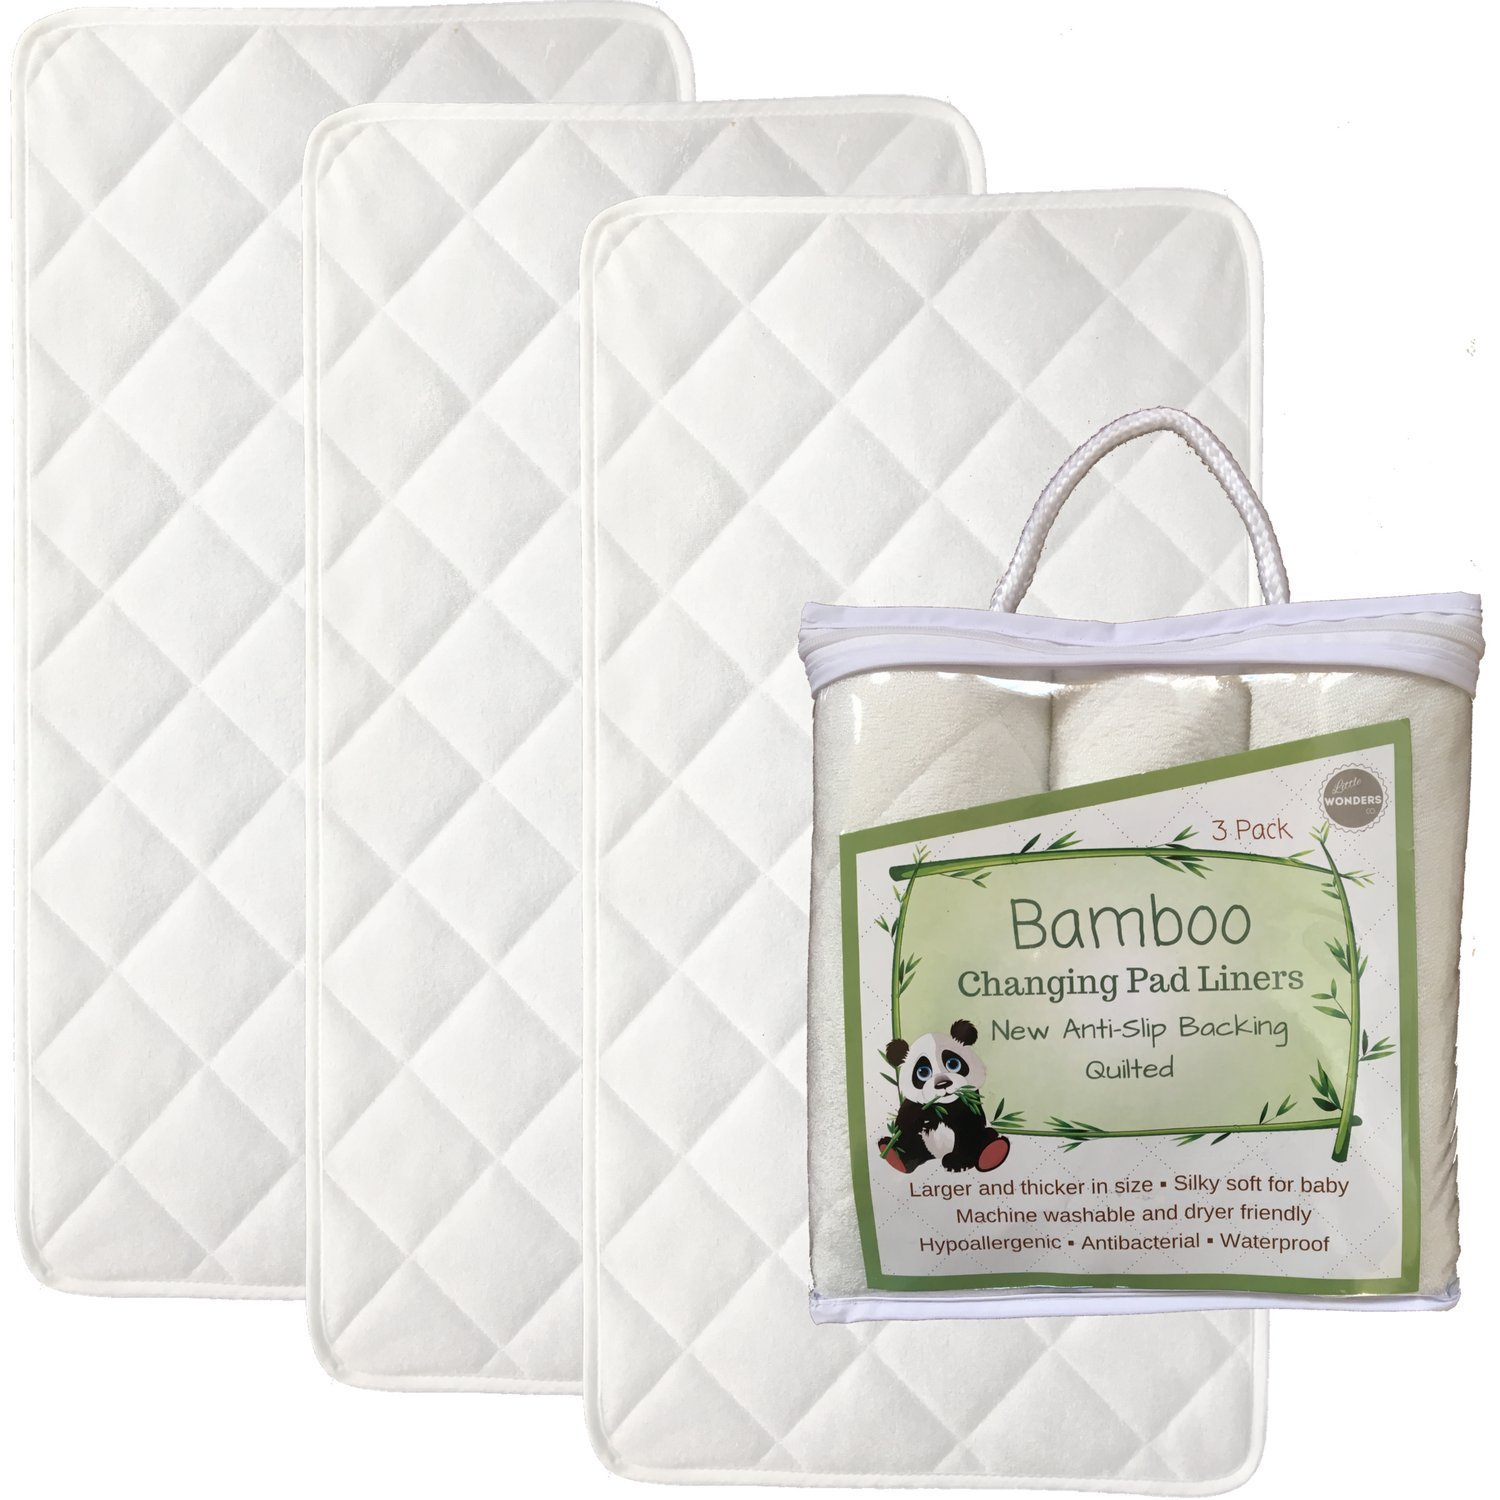 NEW ANTI SLIP - Larger - 27'' x 14'' - Bamboo Changing Pad Liners - 4 Layers - Quilted- 3 Pack - Ultra Soft - Highly Absorbent - Machine Washable, Dryer Friendly by Little Wonders